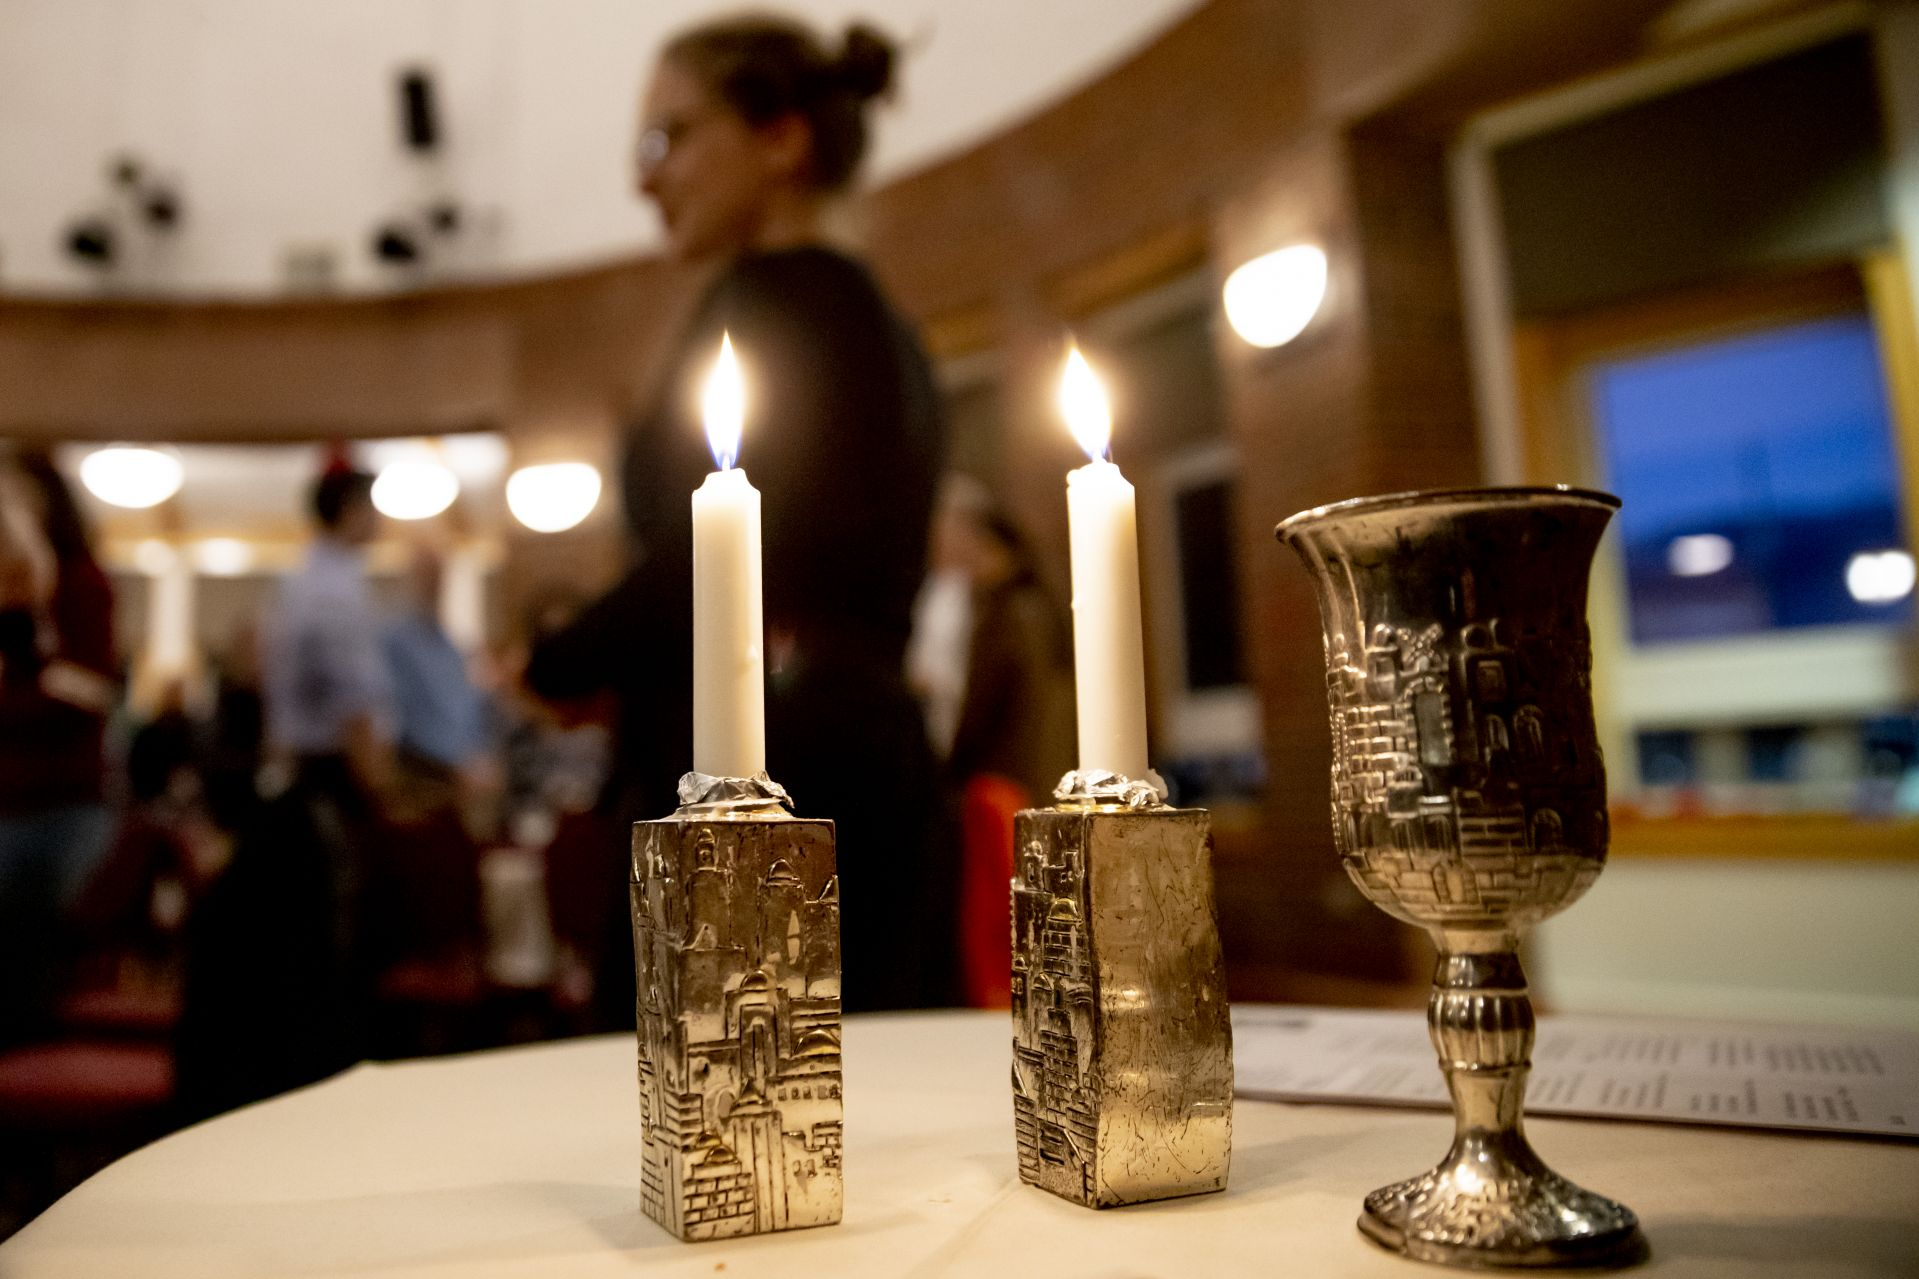 Back to Bates Weekend, Friday evening , Oct. 4, 2019, Shabbat Evening Service and Dinner, Mays Center, Jewish Student Union